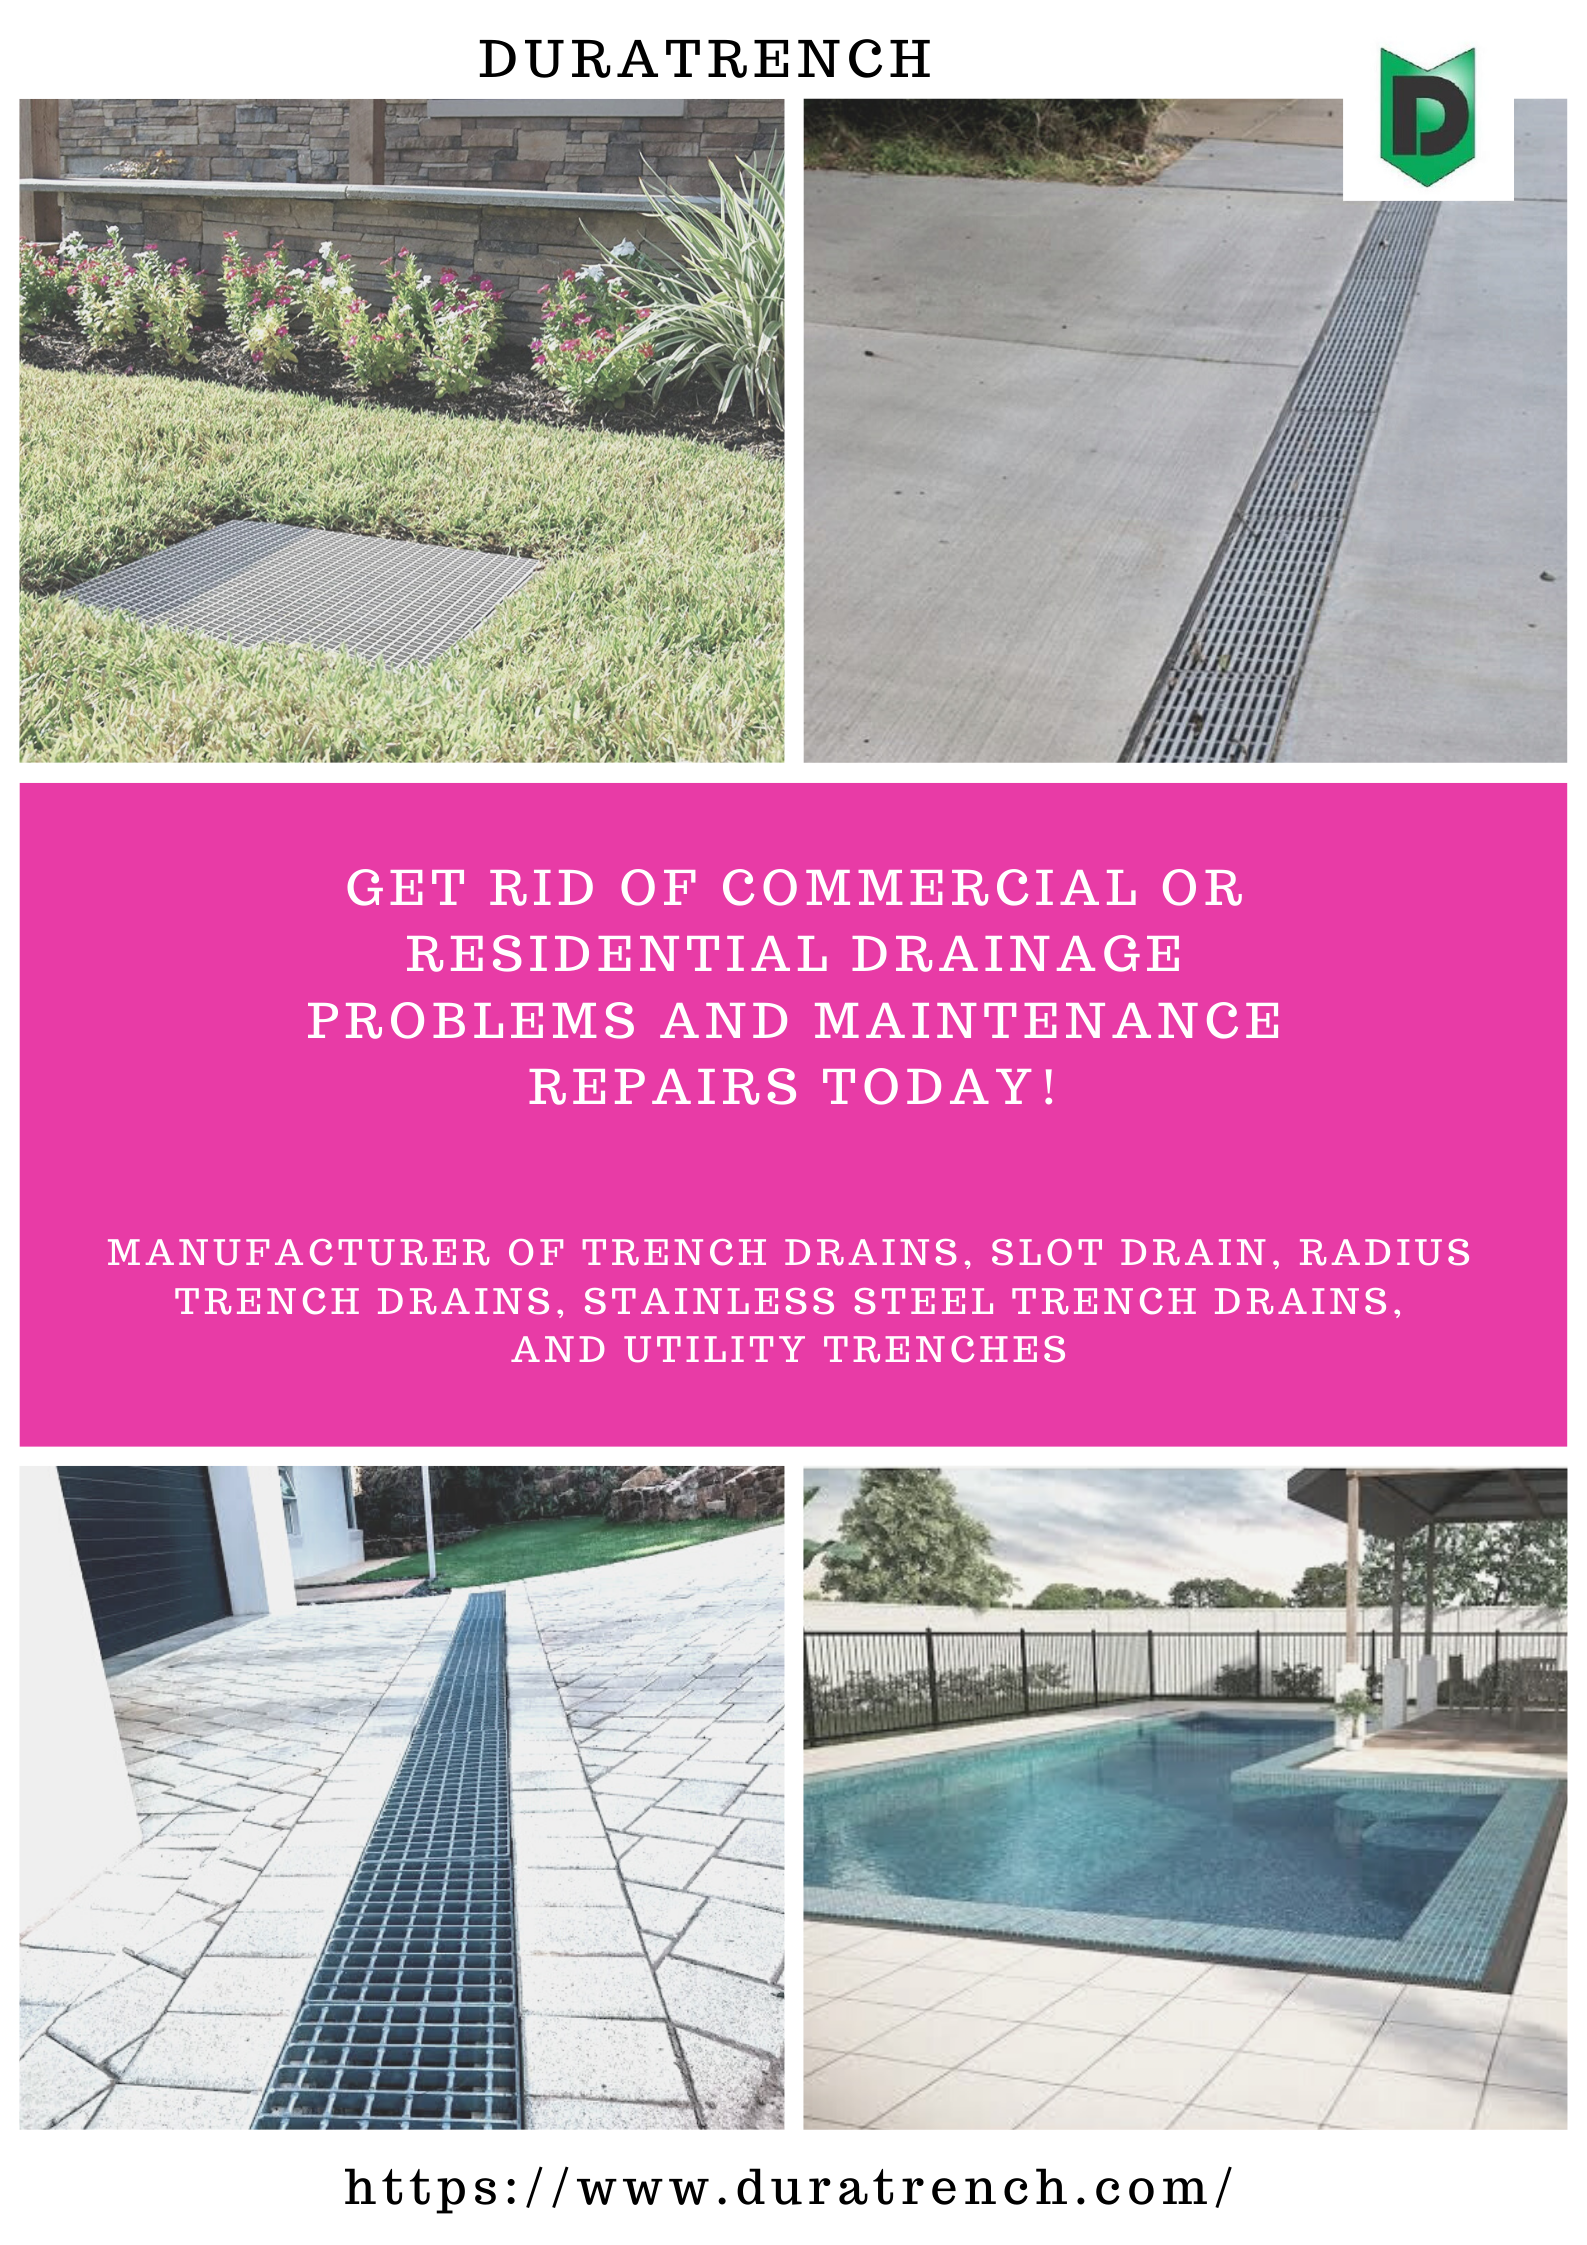 Flooding Of Roadways Can Usually Be Fixed Using Efficient Drainage System Drains Can Become Blocked Very Quickly When Materials Lik Drains Trench Drain Drain